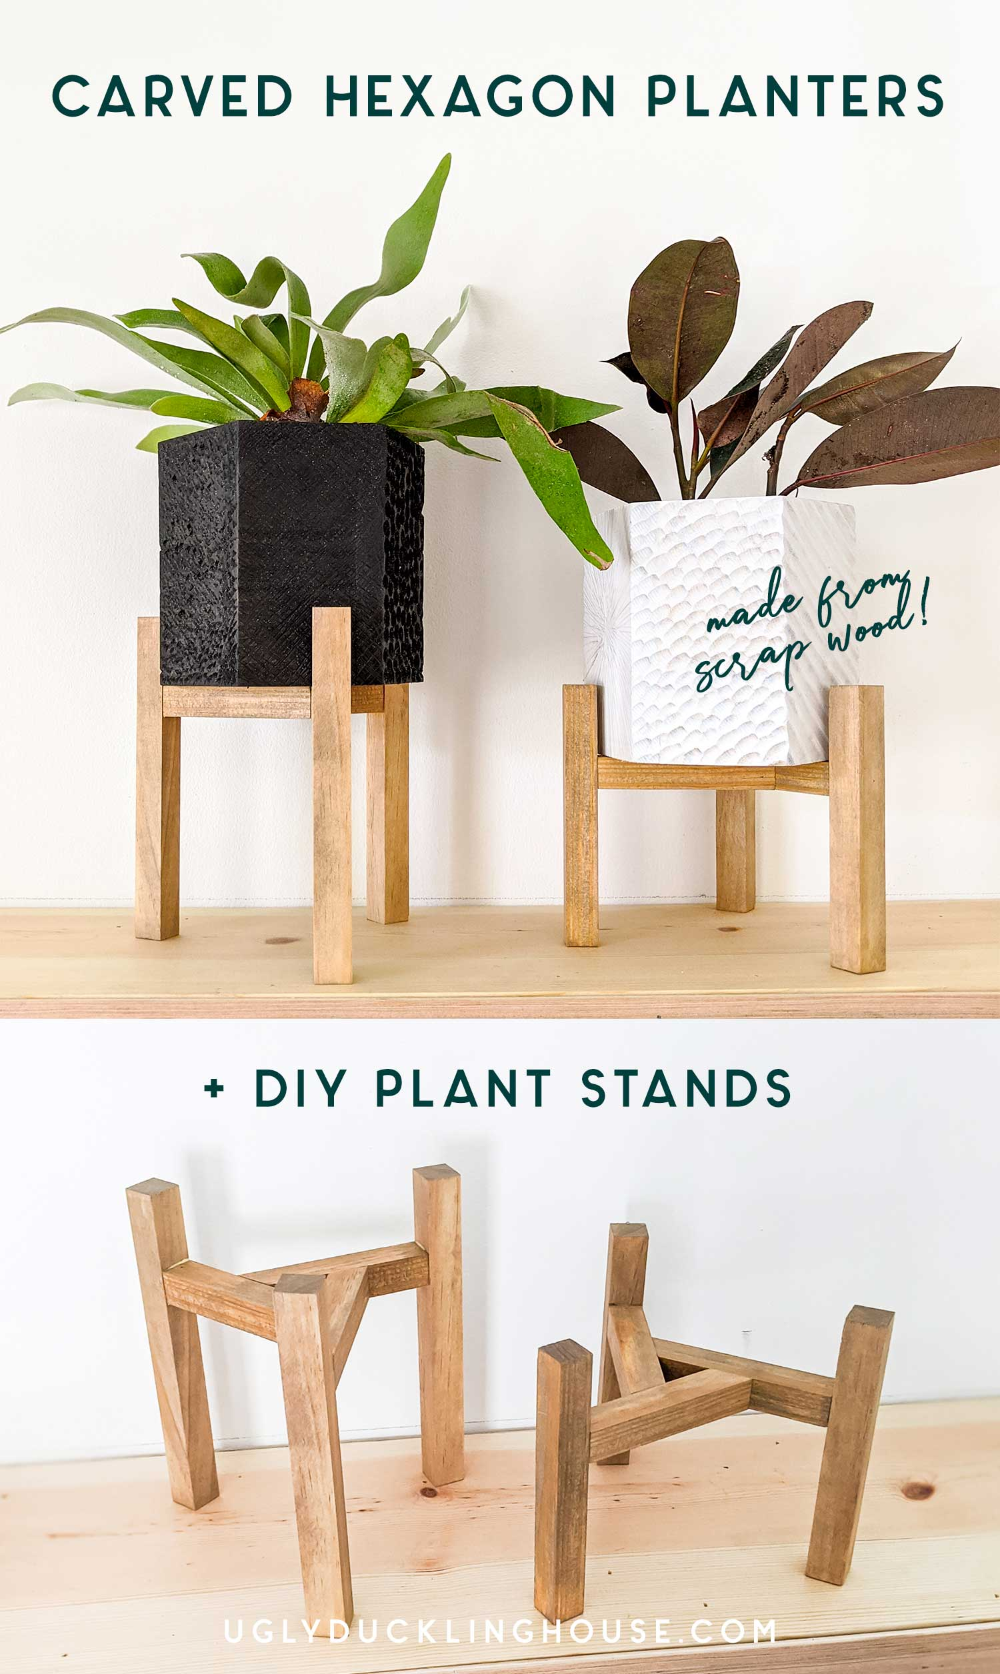 Two for one tutorial! How to make these sweet little hexagonal planters with CARVED WOOD TEXTURE (made from dremels and other grinding tools) and triangular plant stands to hold them! Do one or both projects, it's up to you! #woodcarving #woodworking #diy #crazyplantlady #indoorplants #planter #plantstand #houseplants #scrapwood